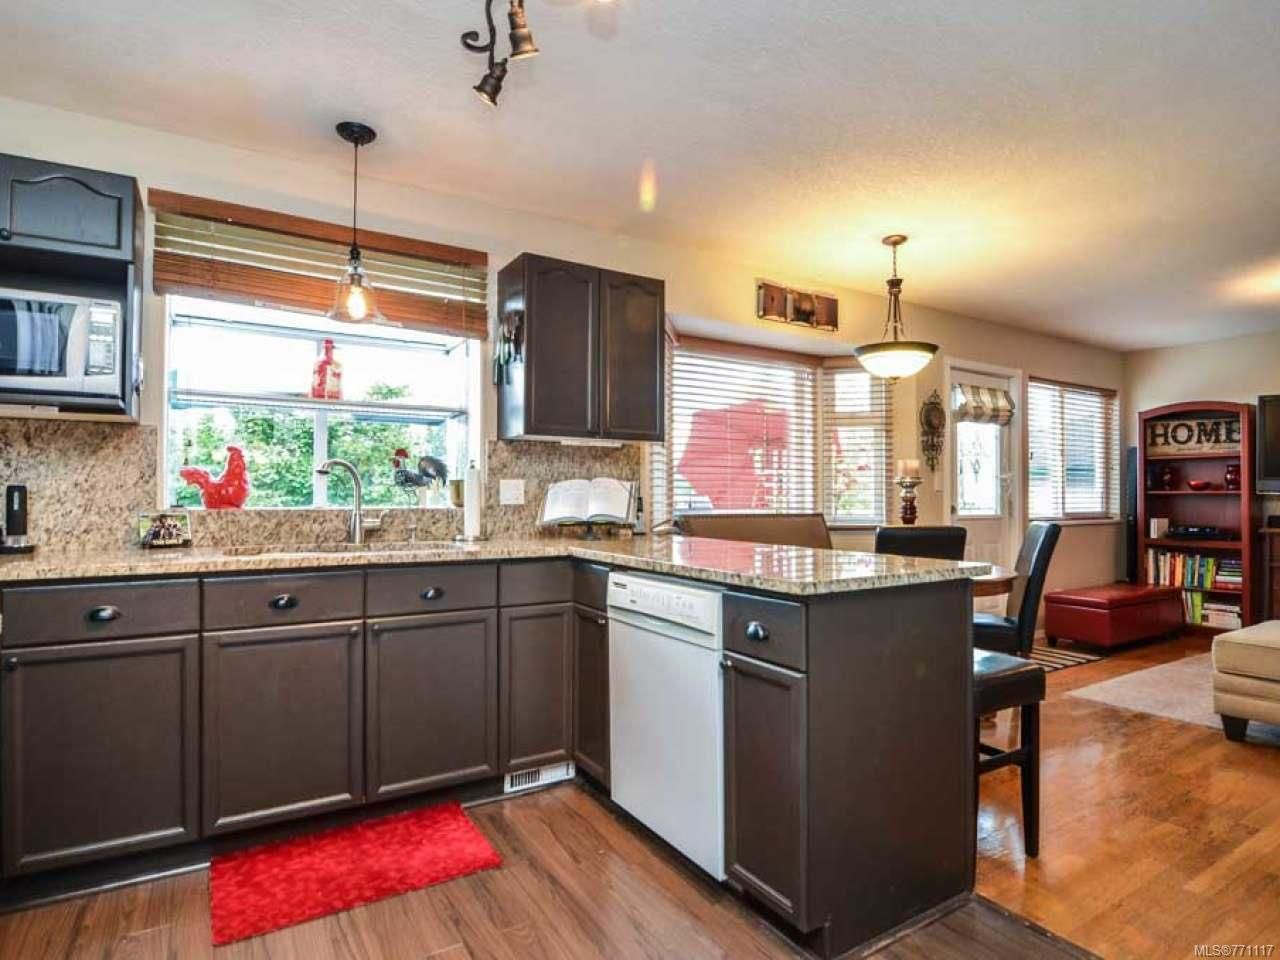 Photo 18: Photos: 697 Steenbuck Dr in CAMPBELL RIVER: CR Campbell River Central House for sale (Campbell River)  : MLS®# 771117